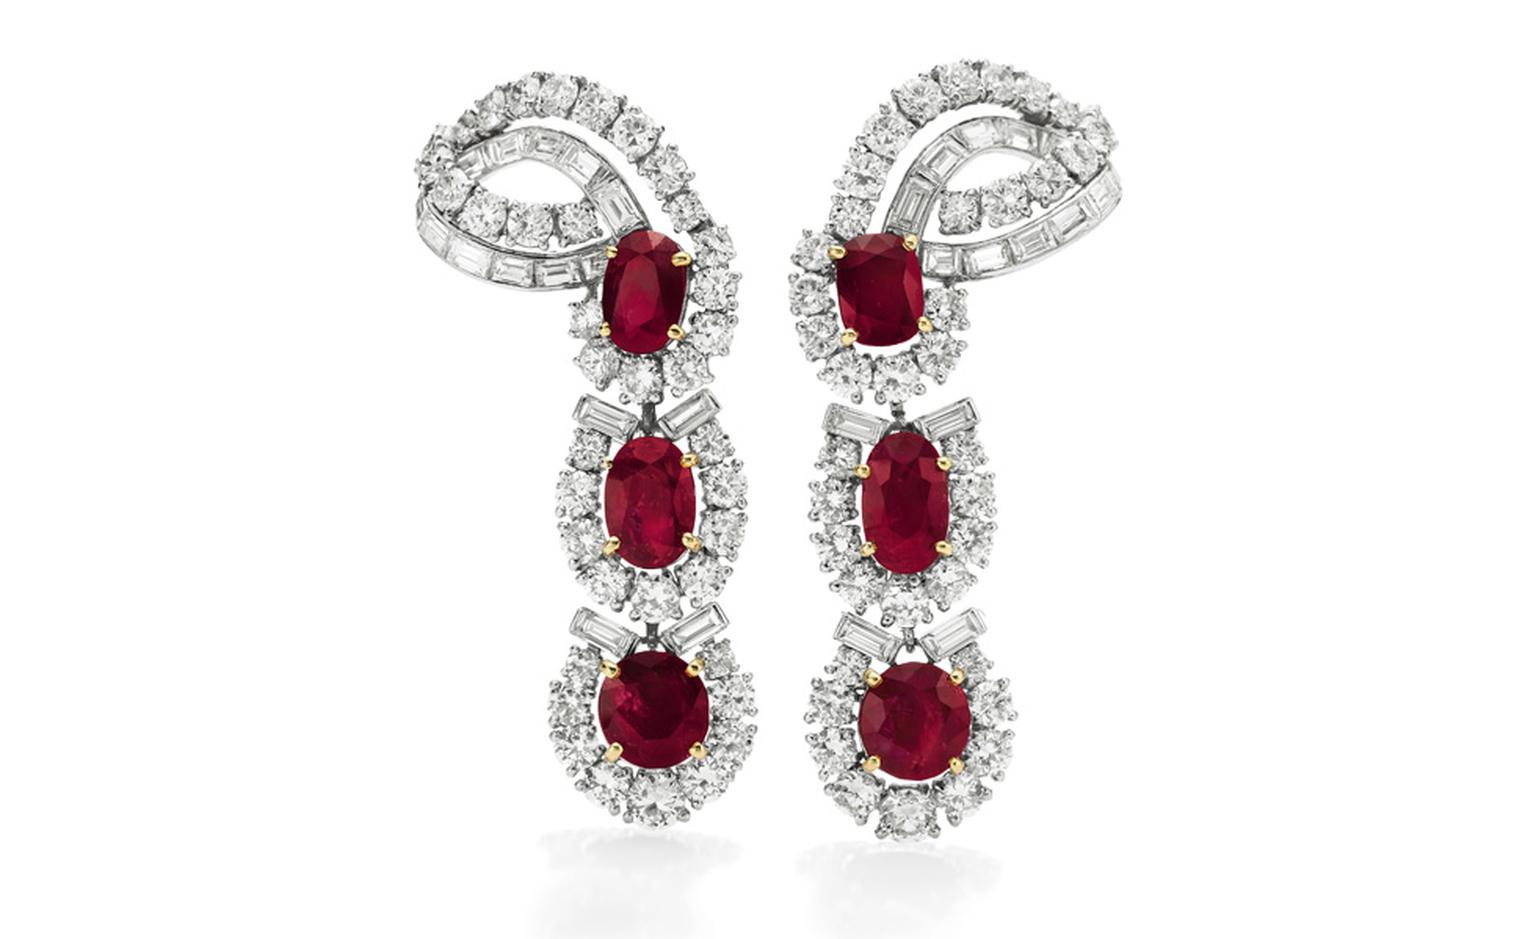 The Cartier Ruby Suite. Earrings Estimate: $80,000 – 120,000